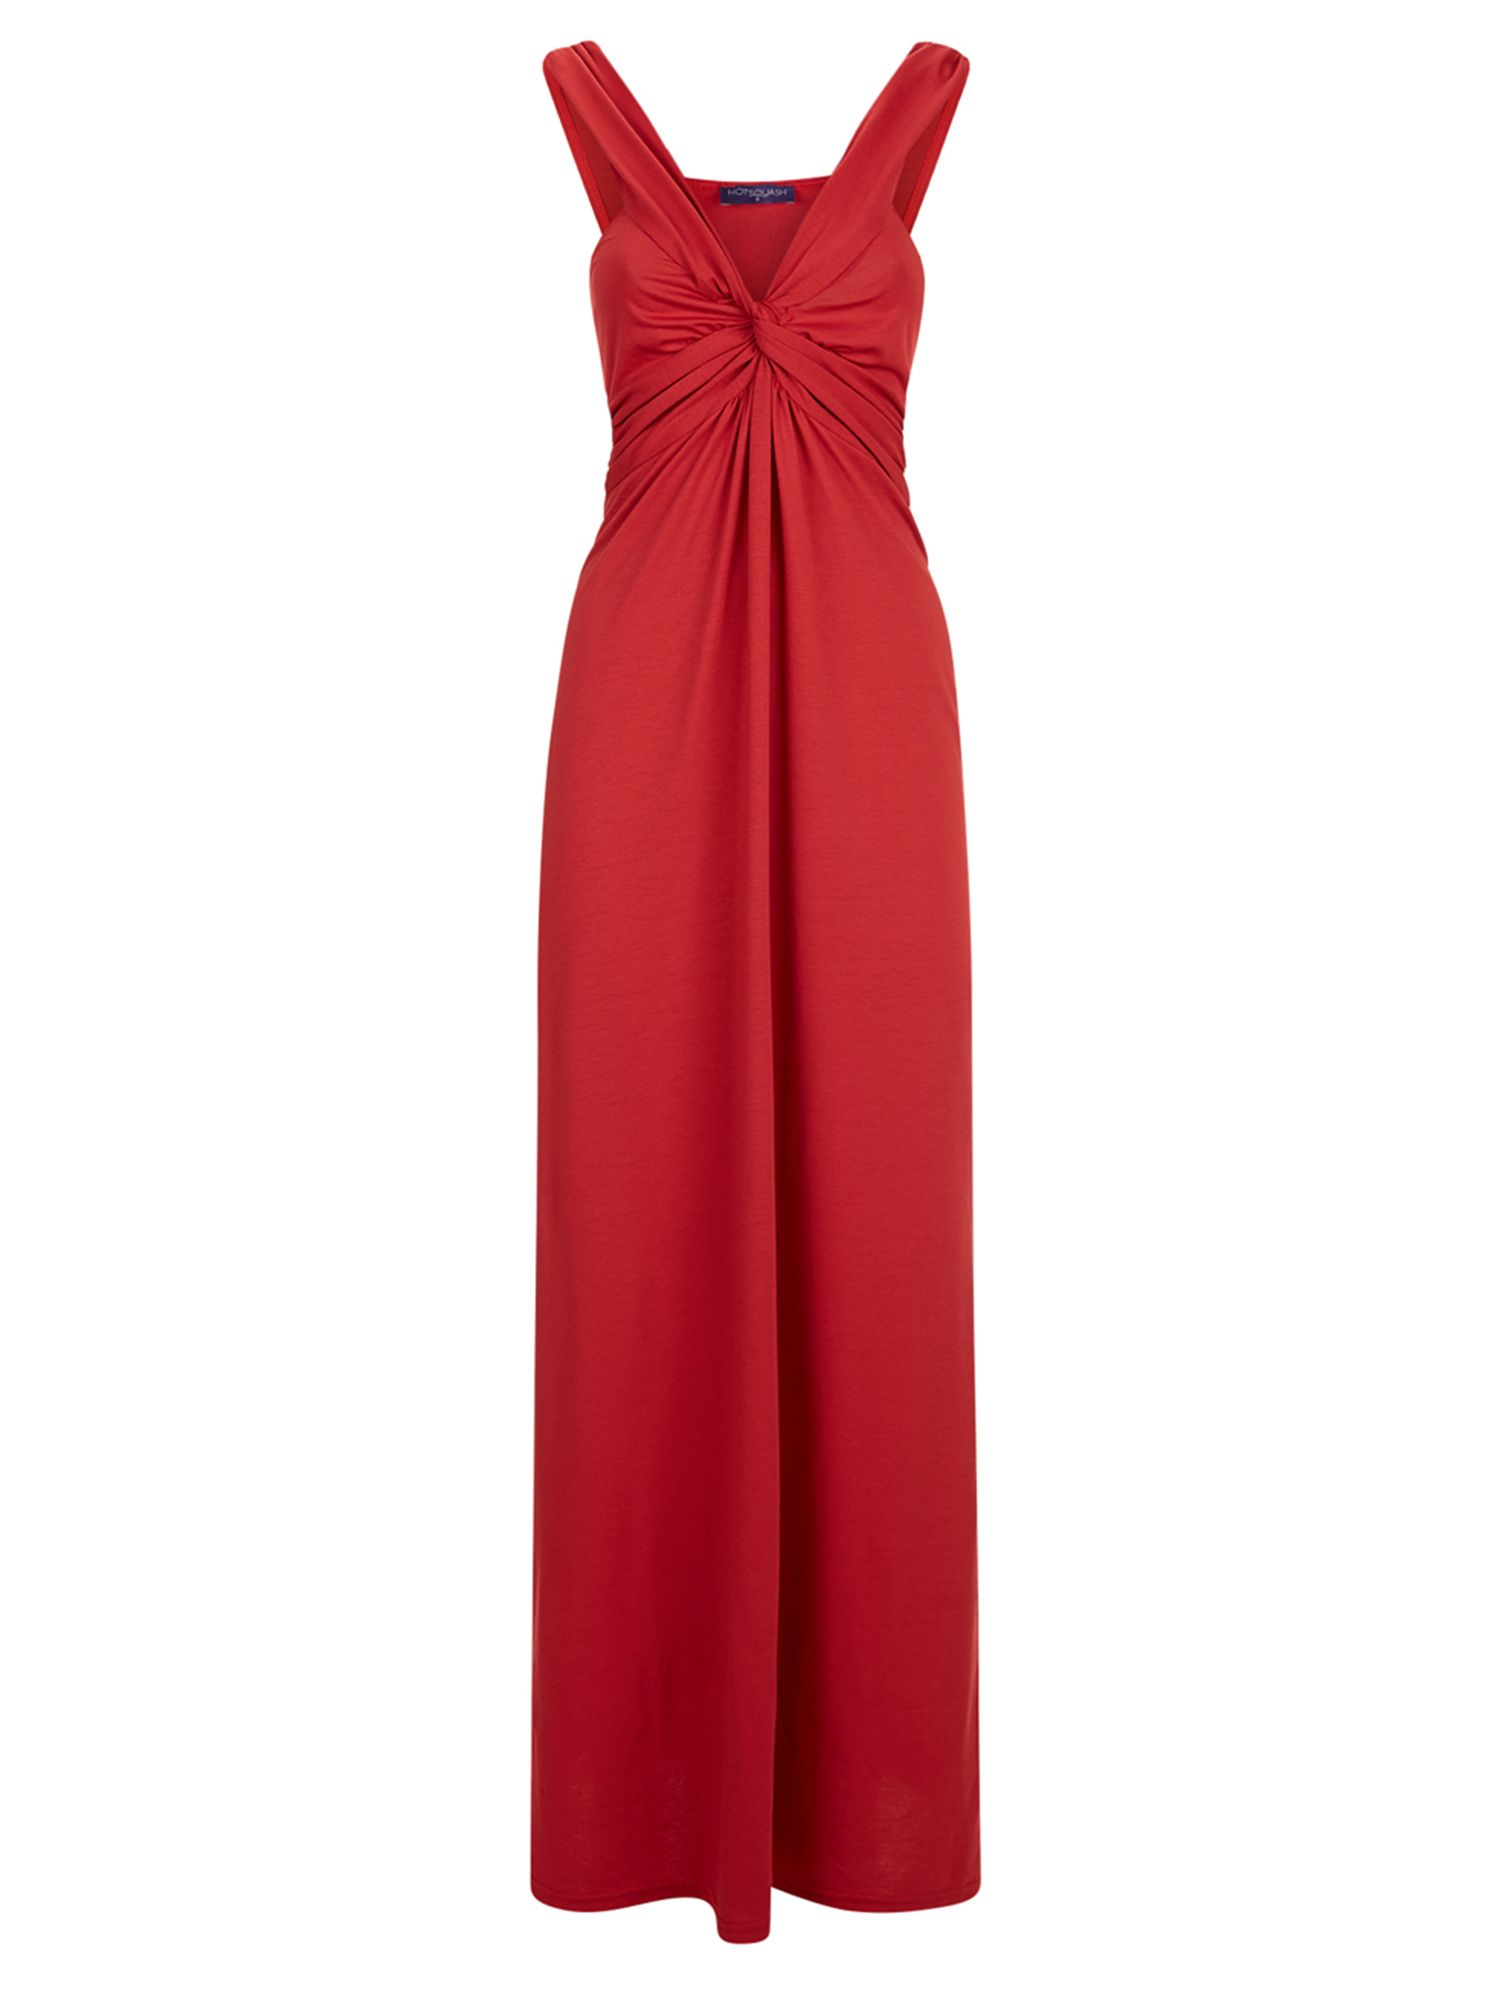 HotSquash Twist Strap Jersey Maxi Dress, Red